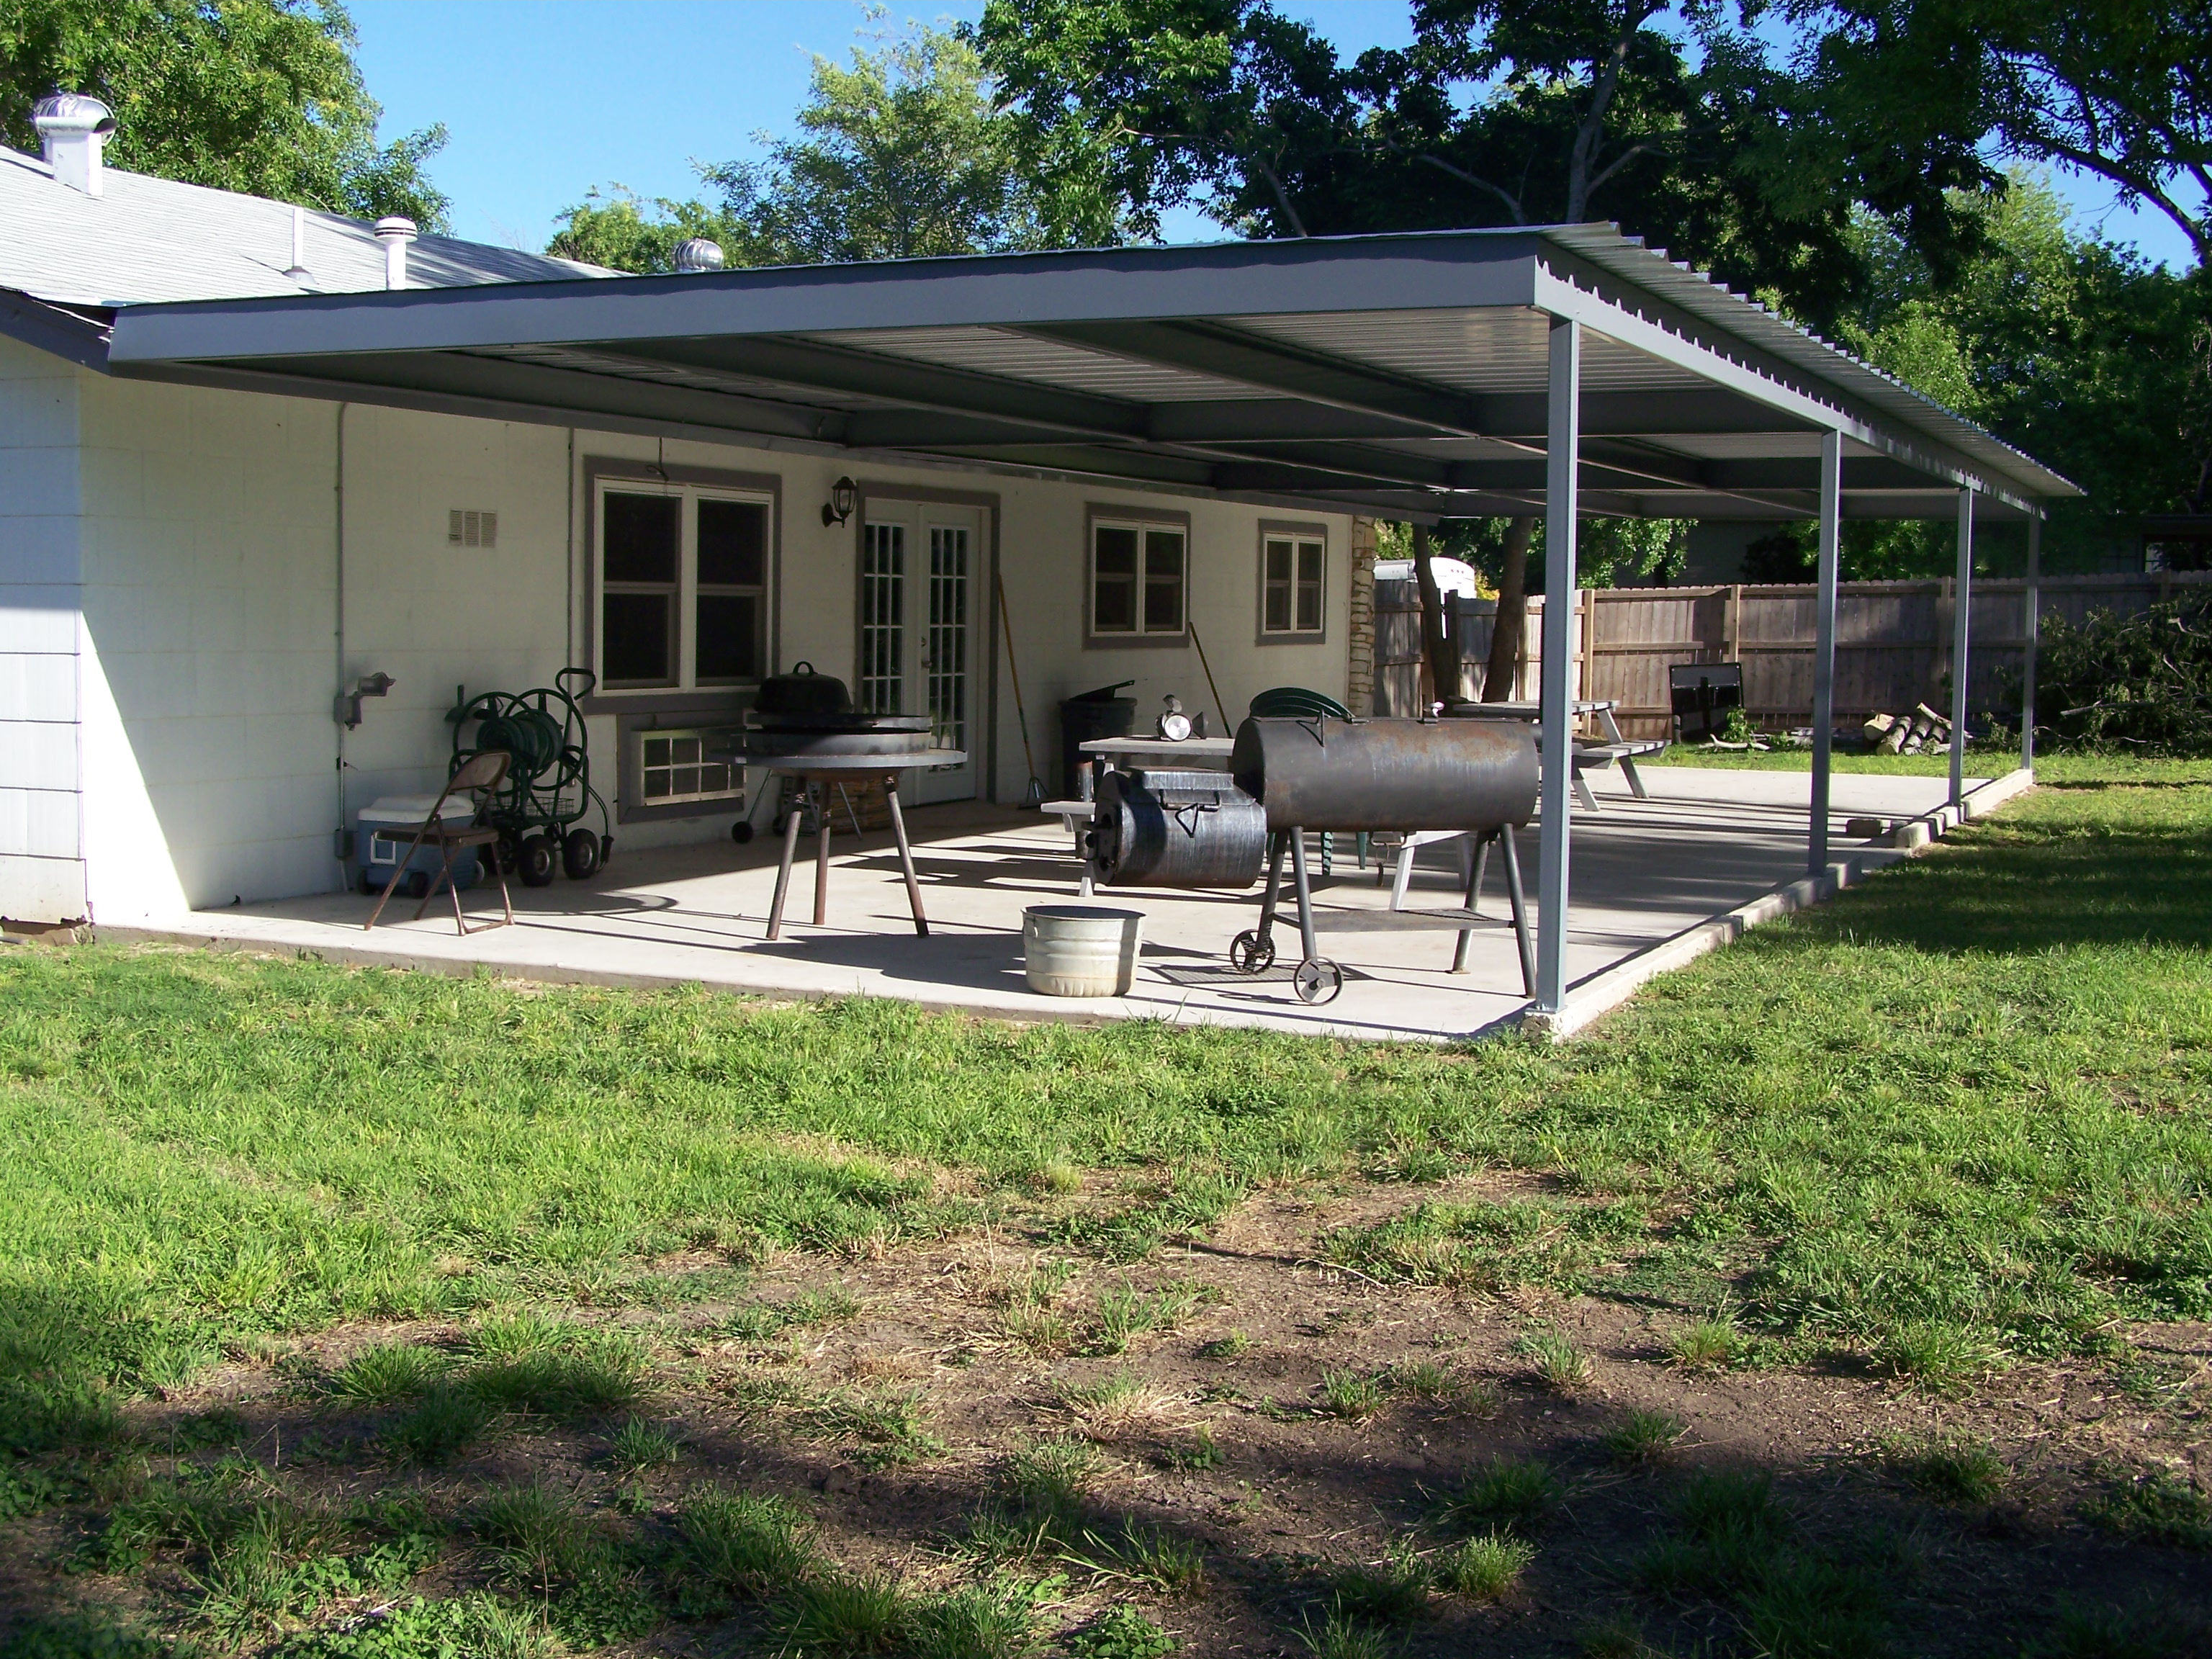 55x20b - Carport Patio Covers Awnings San Antonio - Best ...